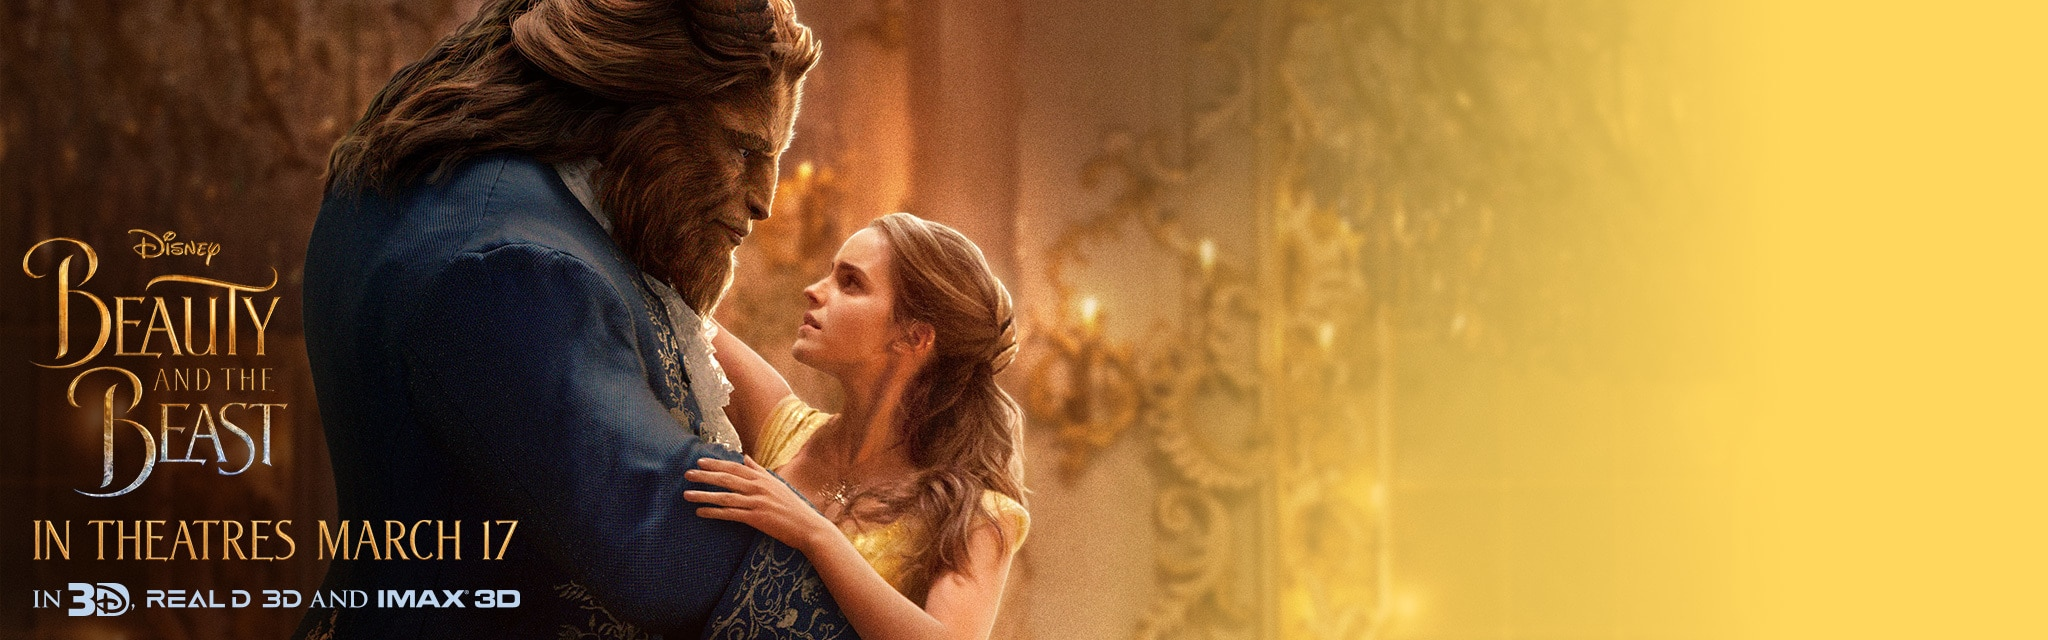 Beauty and the Beast - Final Trailer - Hero